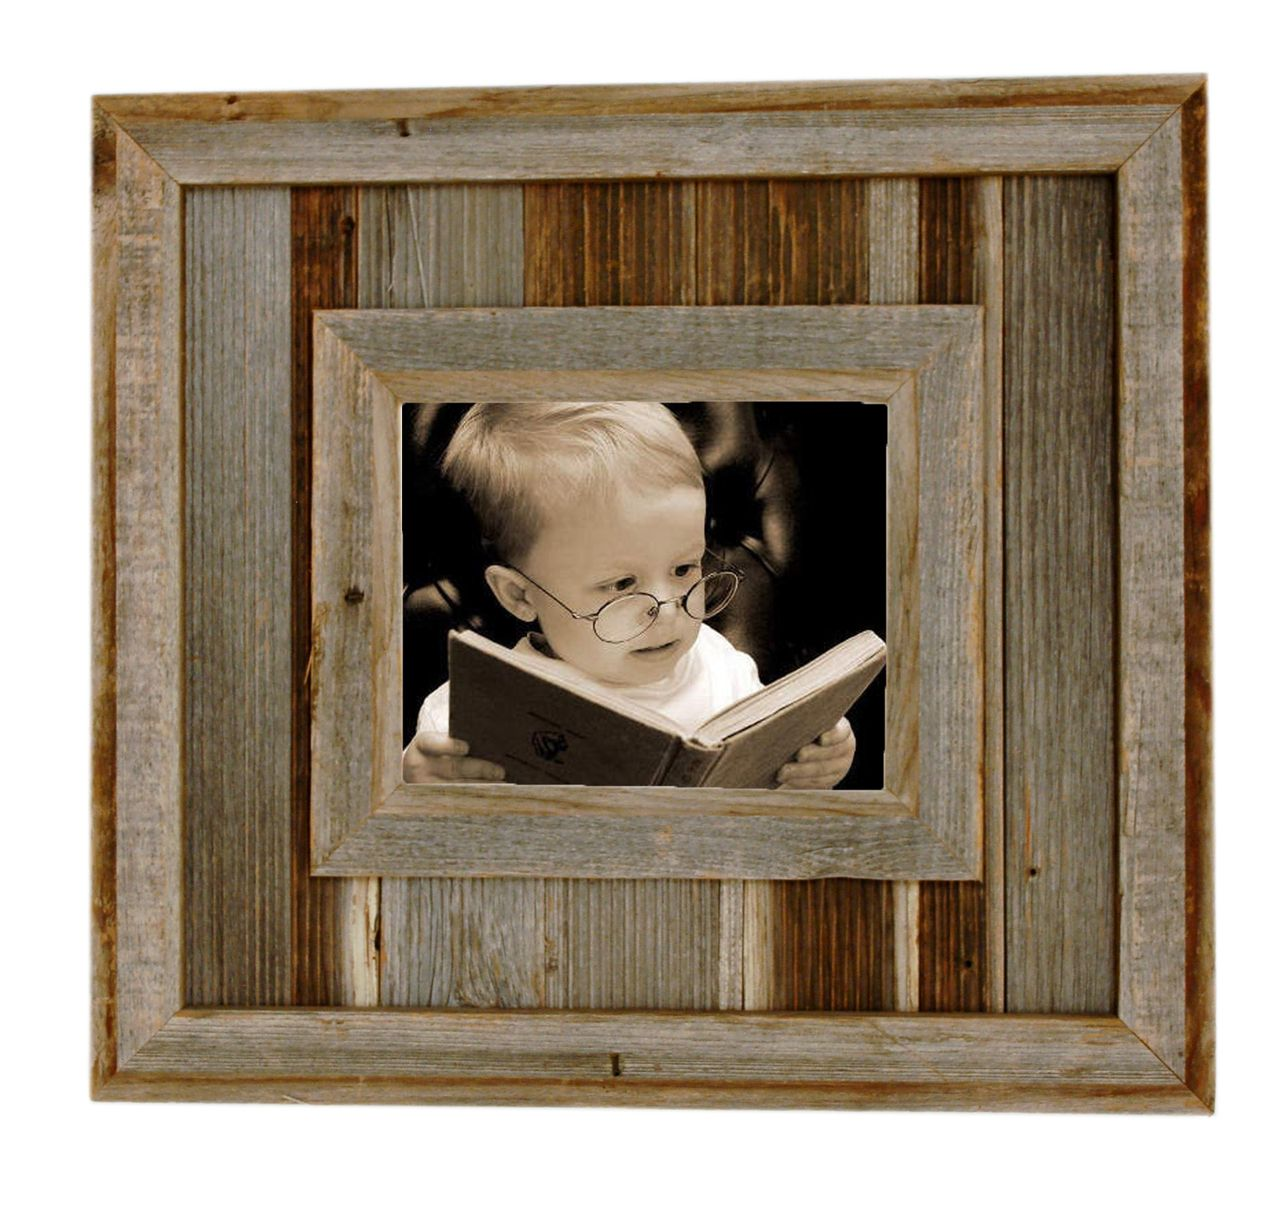 Durango Rustic Barnwood Picture Frame, 8x10 Opening Western Aged ...